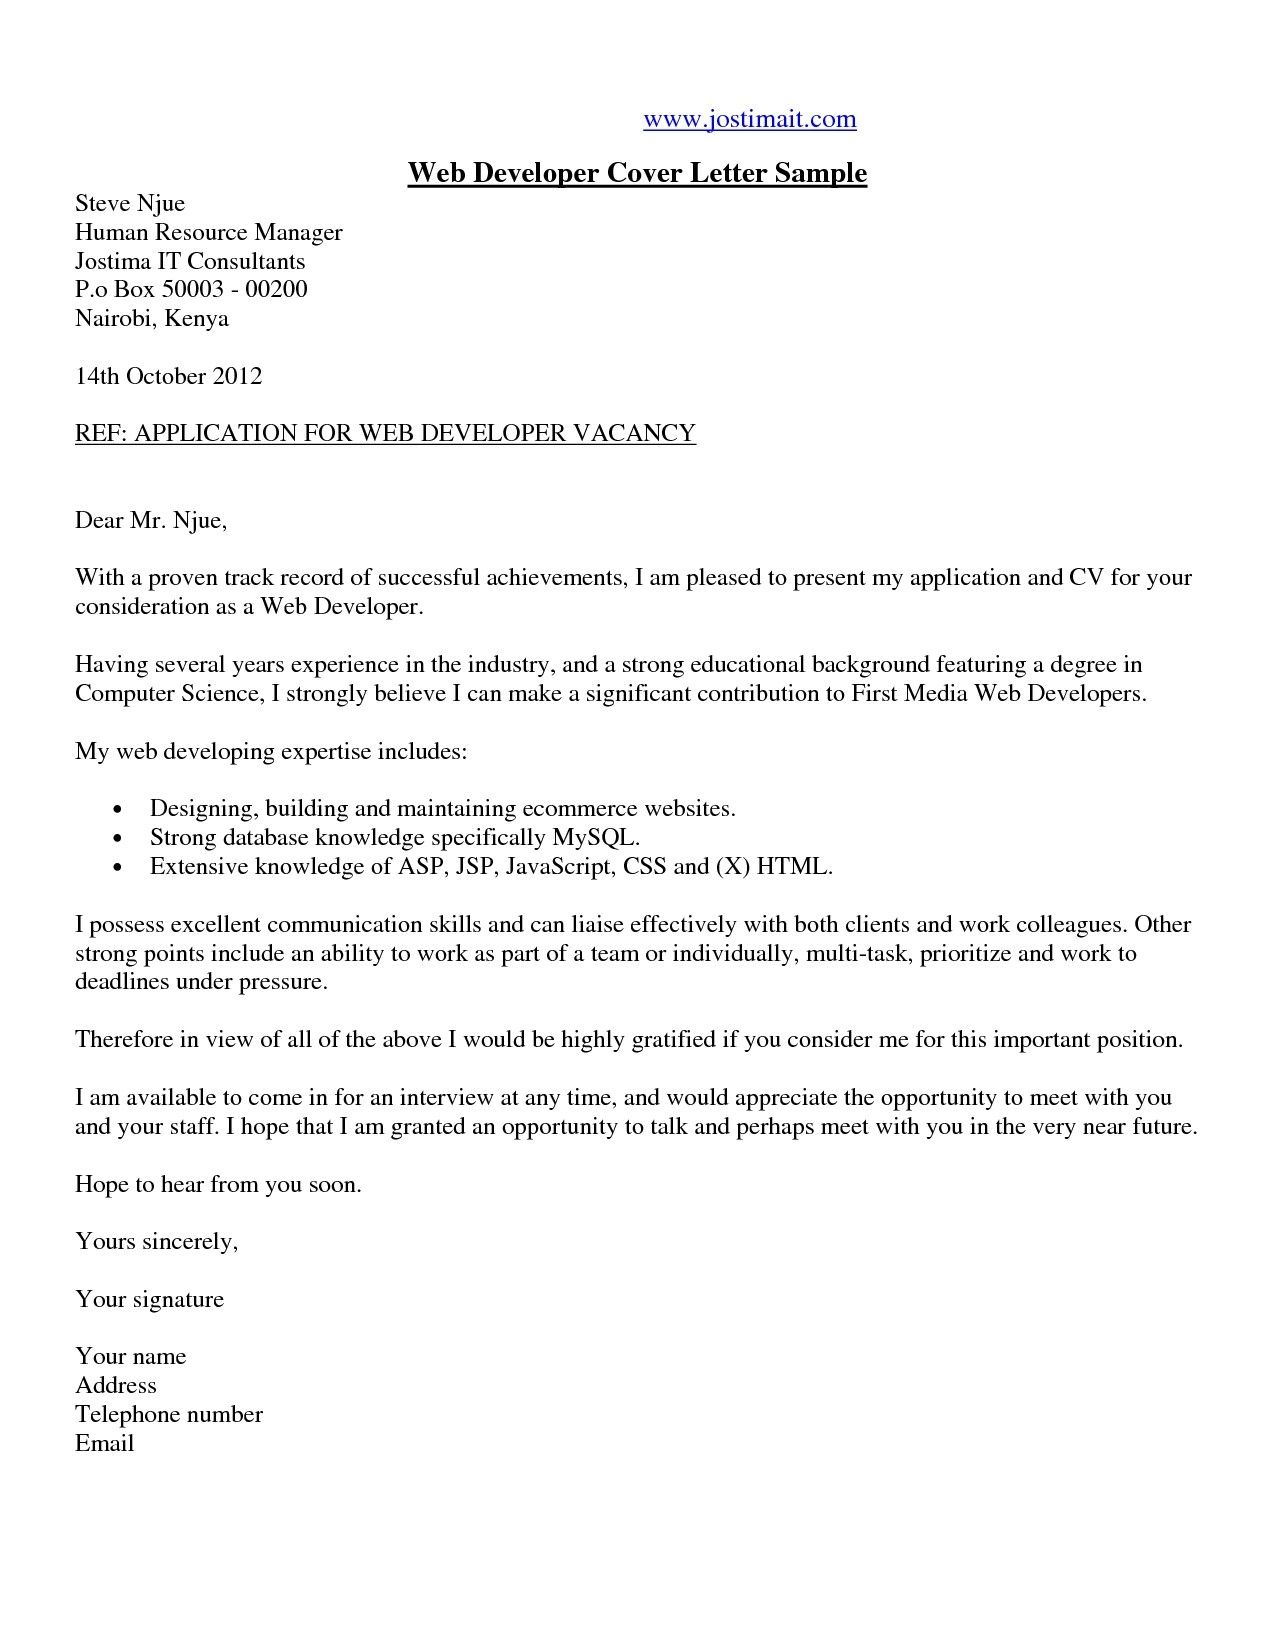 27+ Web Developer Cover Letter | Resume Cover Letter Example ...